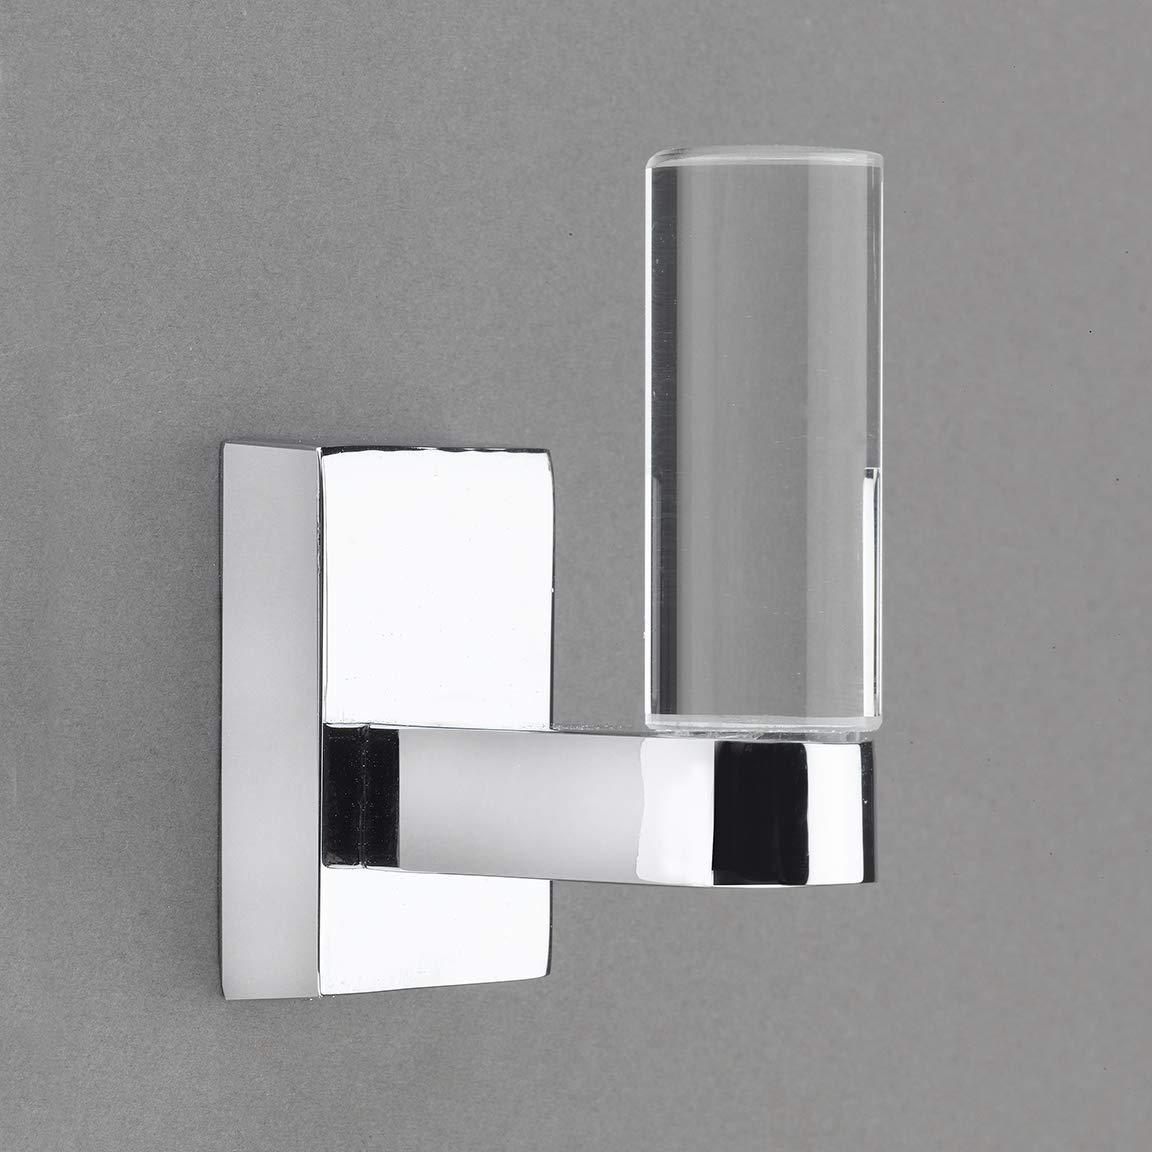 Belle Crystal Collection Polished Chrome Towel Hook/Robe Hook - Good for Kitchen, Bathroom, Bedroom, Or Closet Hardware - 	P100-12/4557